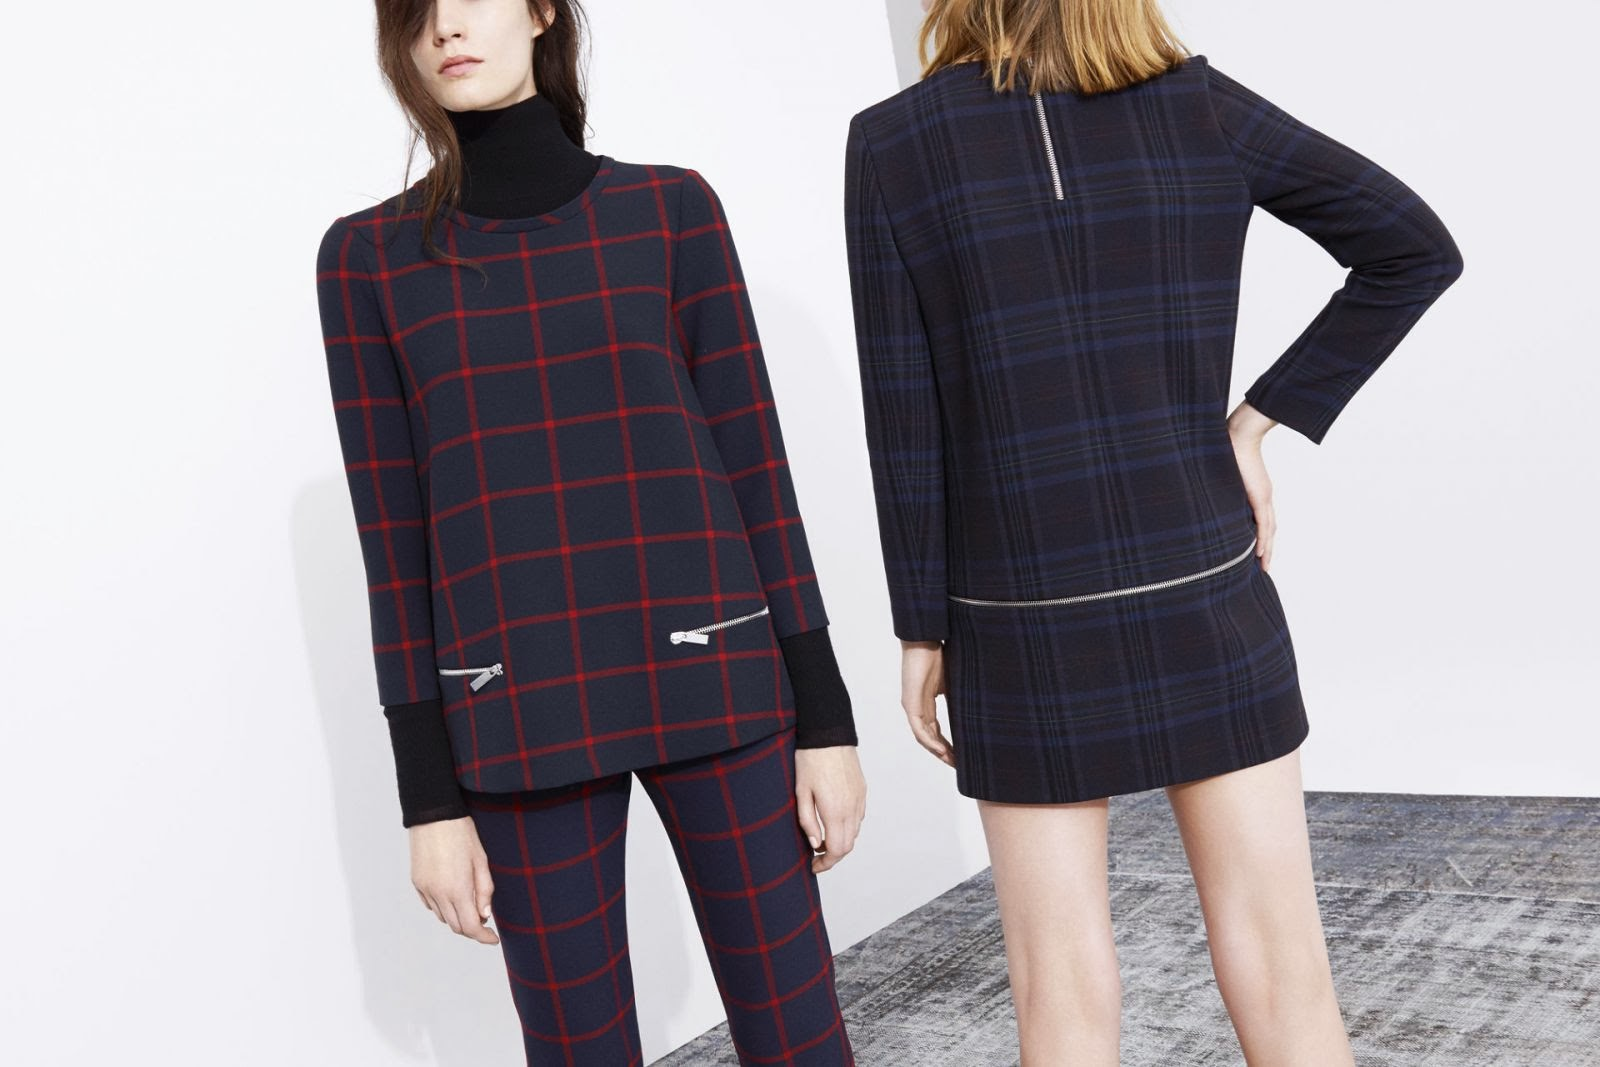 fashioncollectiontrend zara 2014 fall winter collection